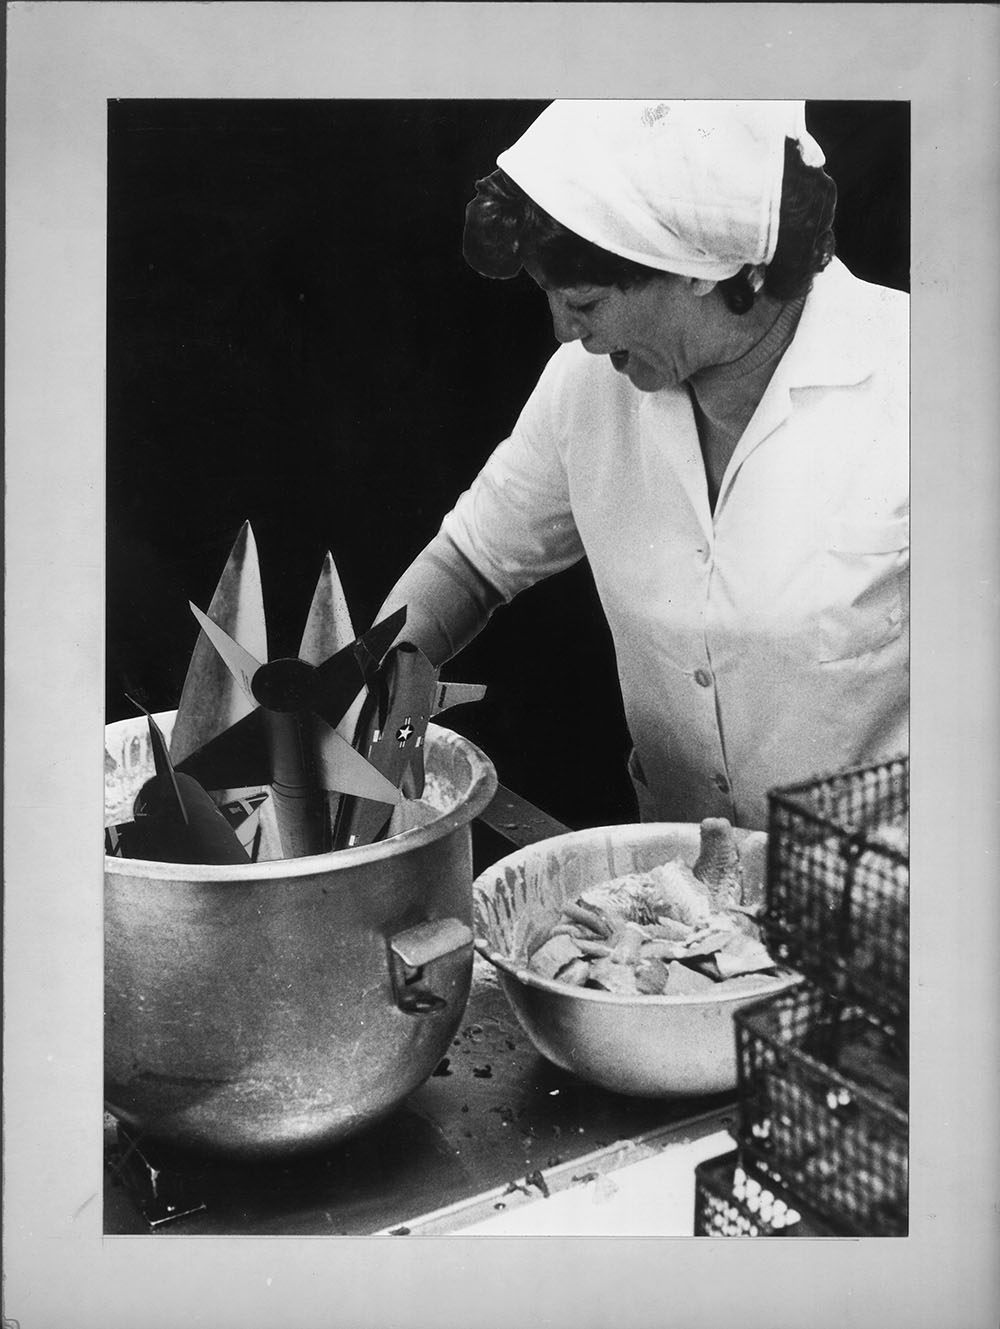 School Dinners? - PhotomontageGelatin silver prints on card1986First published: About Turn,Pluto Press, 1986Catalogue: PK/244